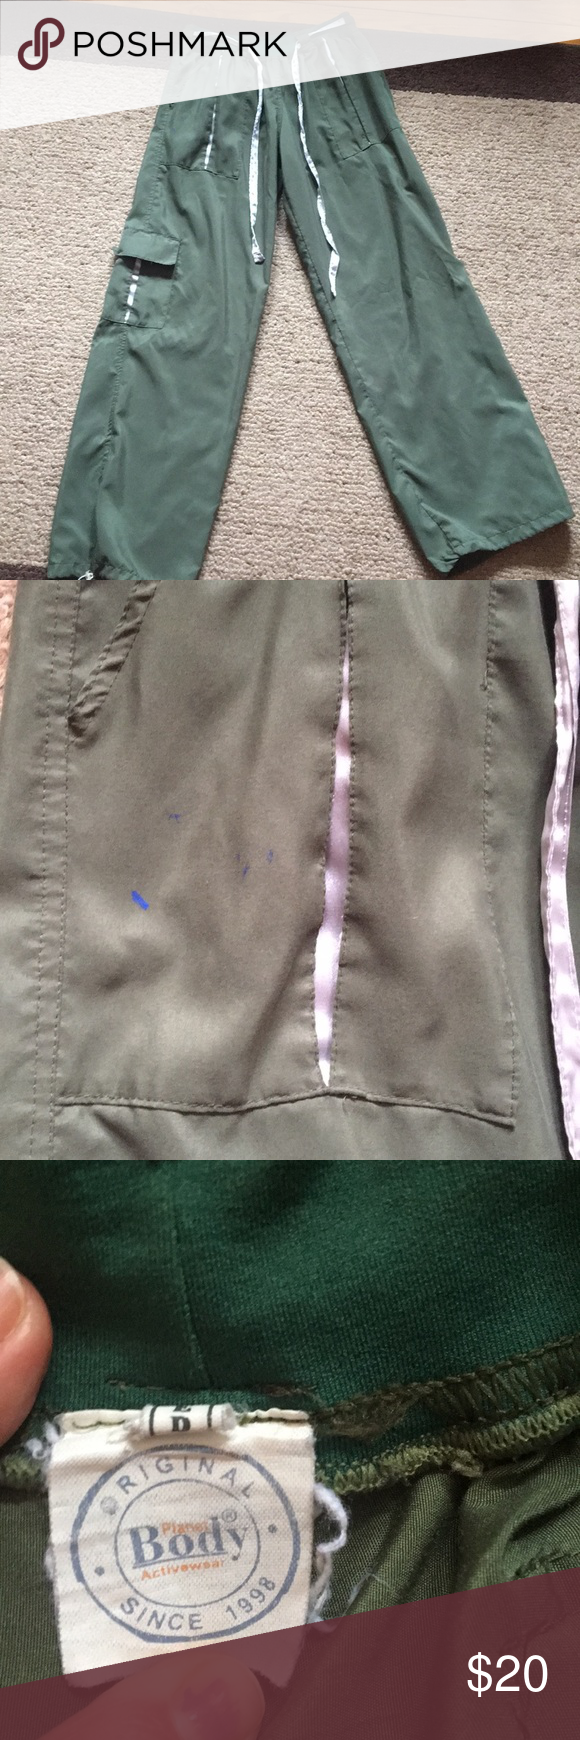 Fitness/Zumba pant Extremely soft and flowy. Small ink